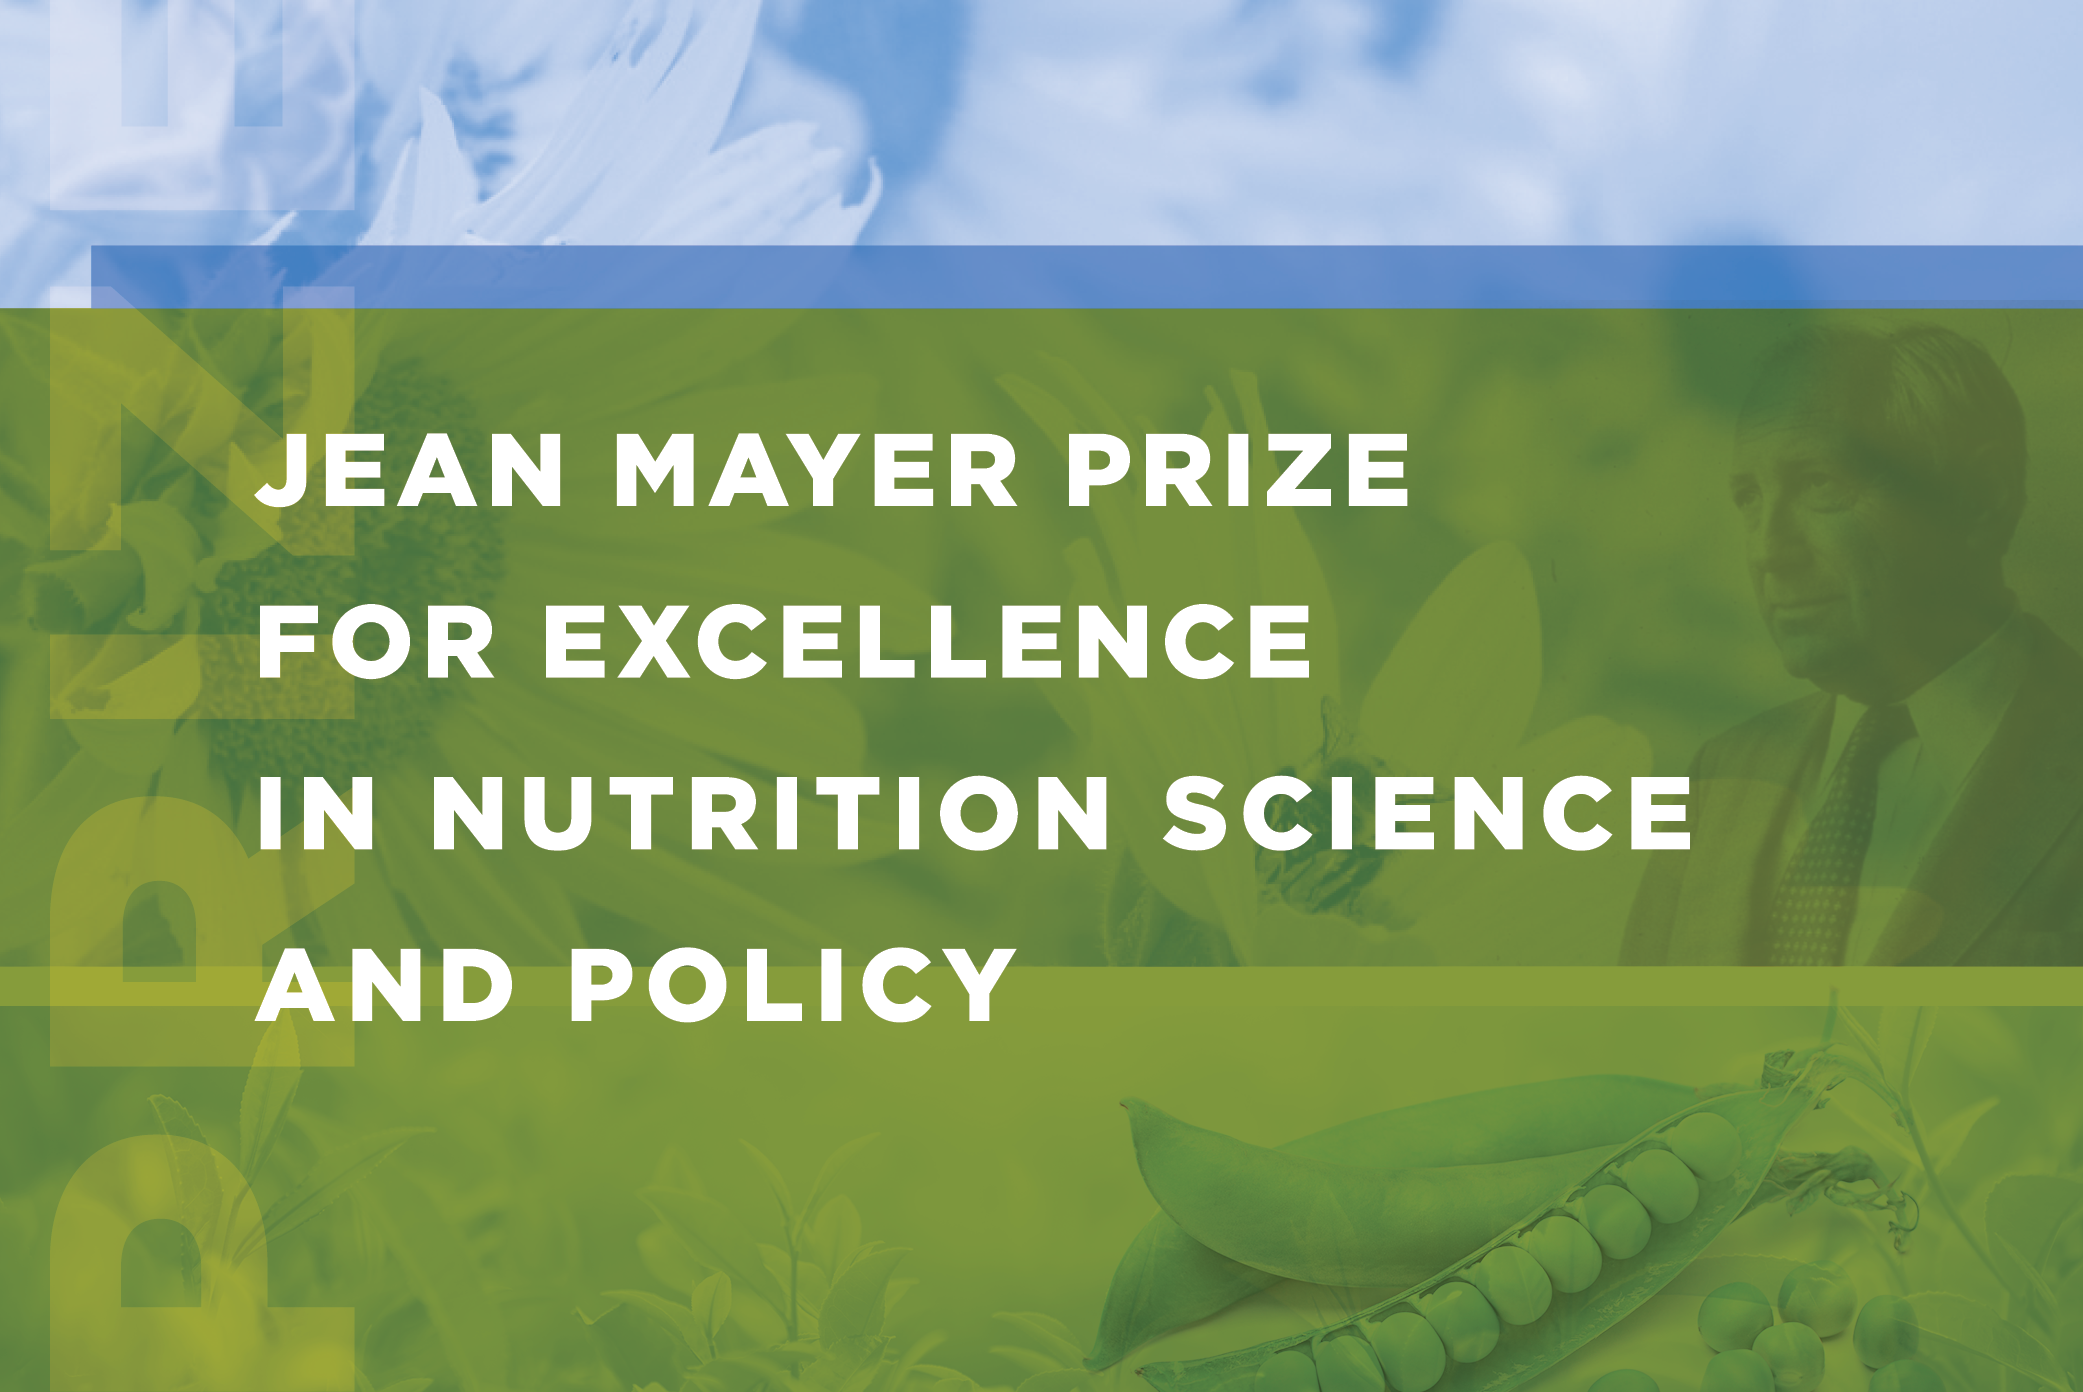 2020 Jean Mayer Prize Awarded for Tackling COVID-19 Food Crisis